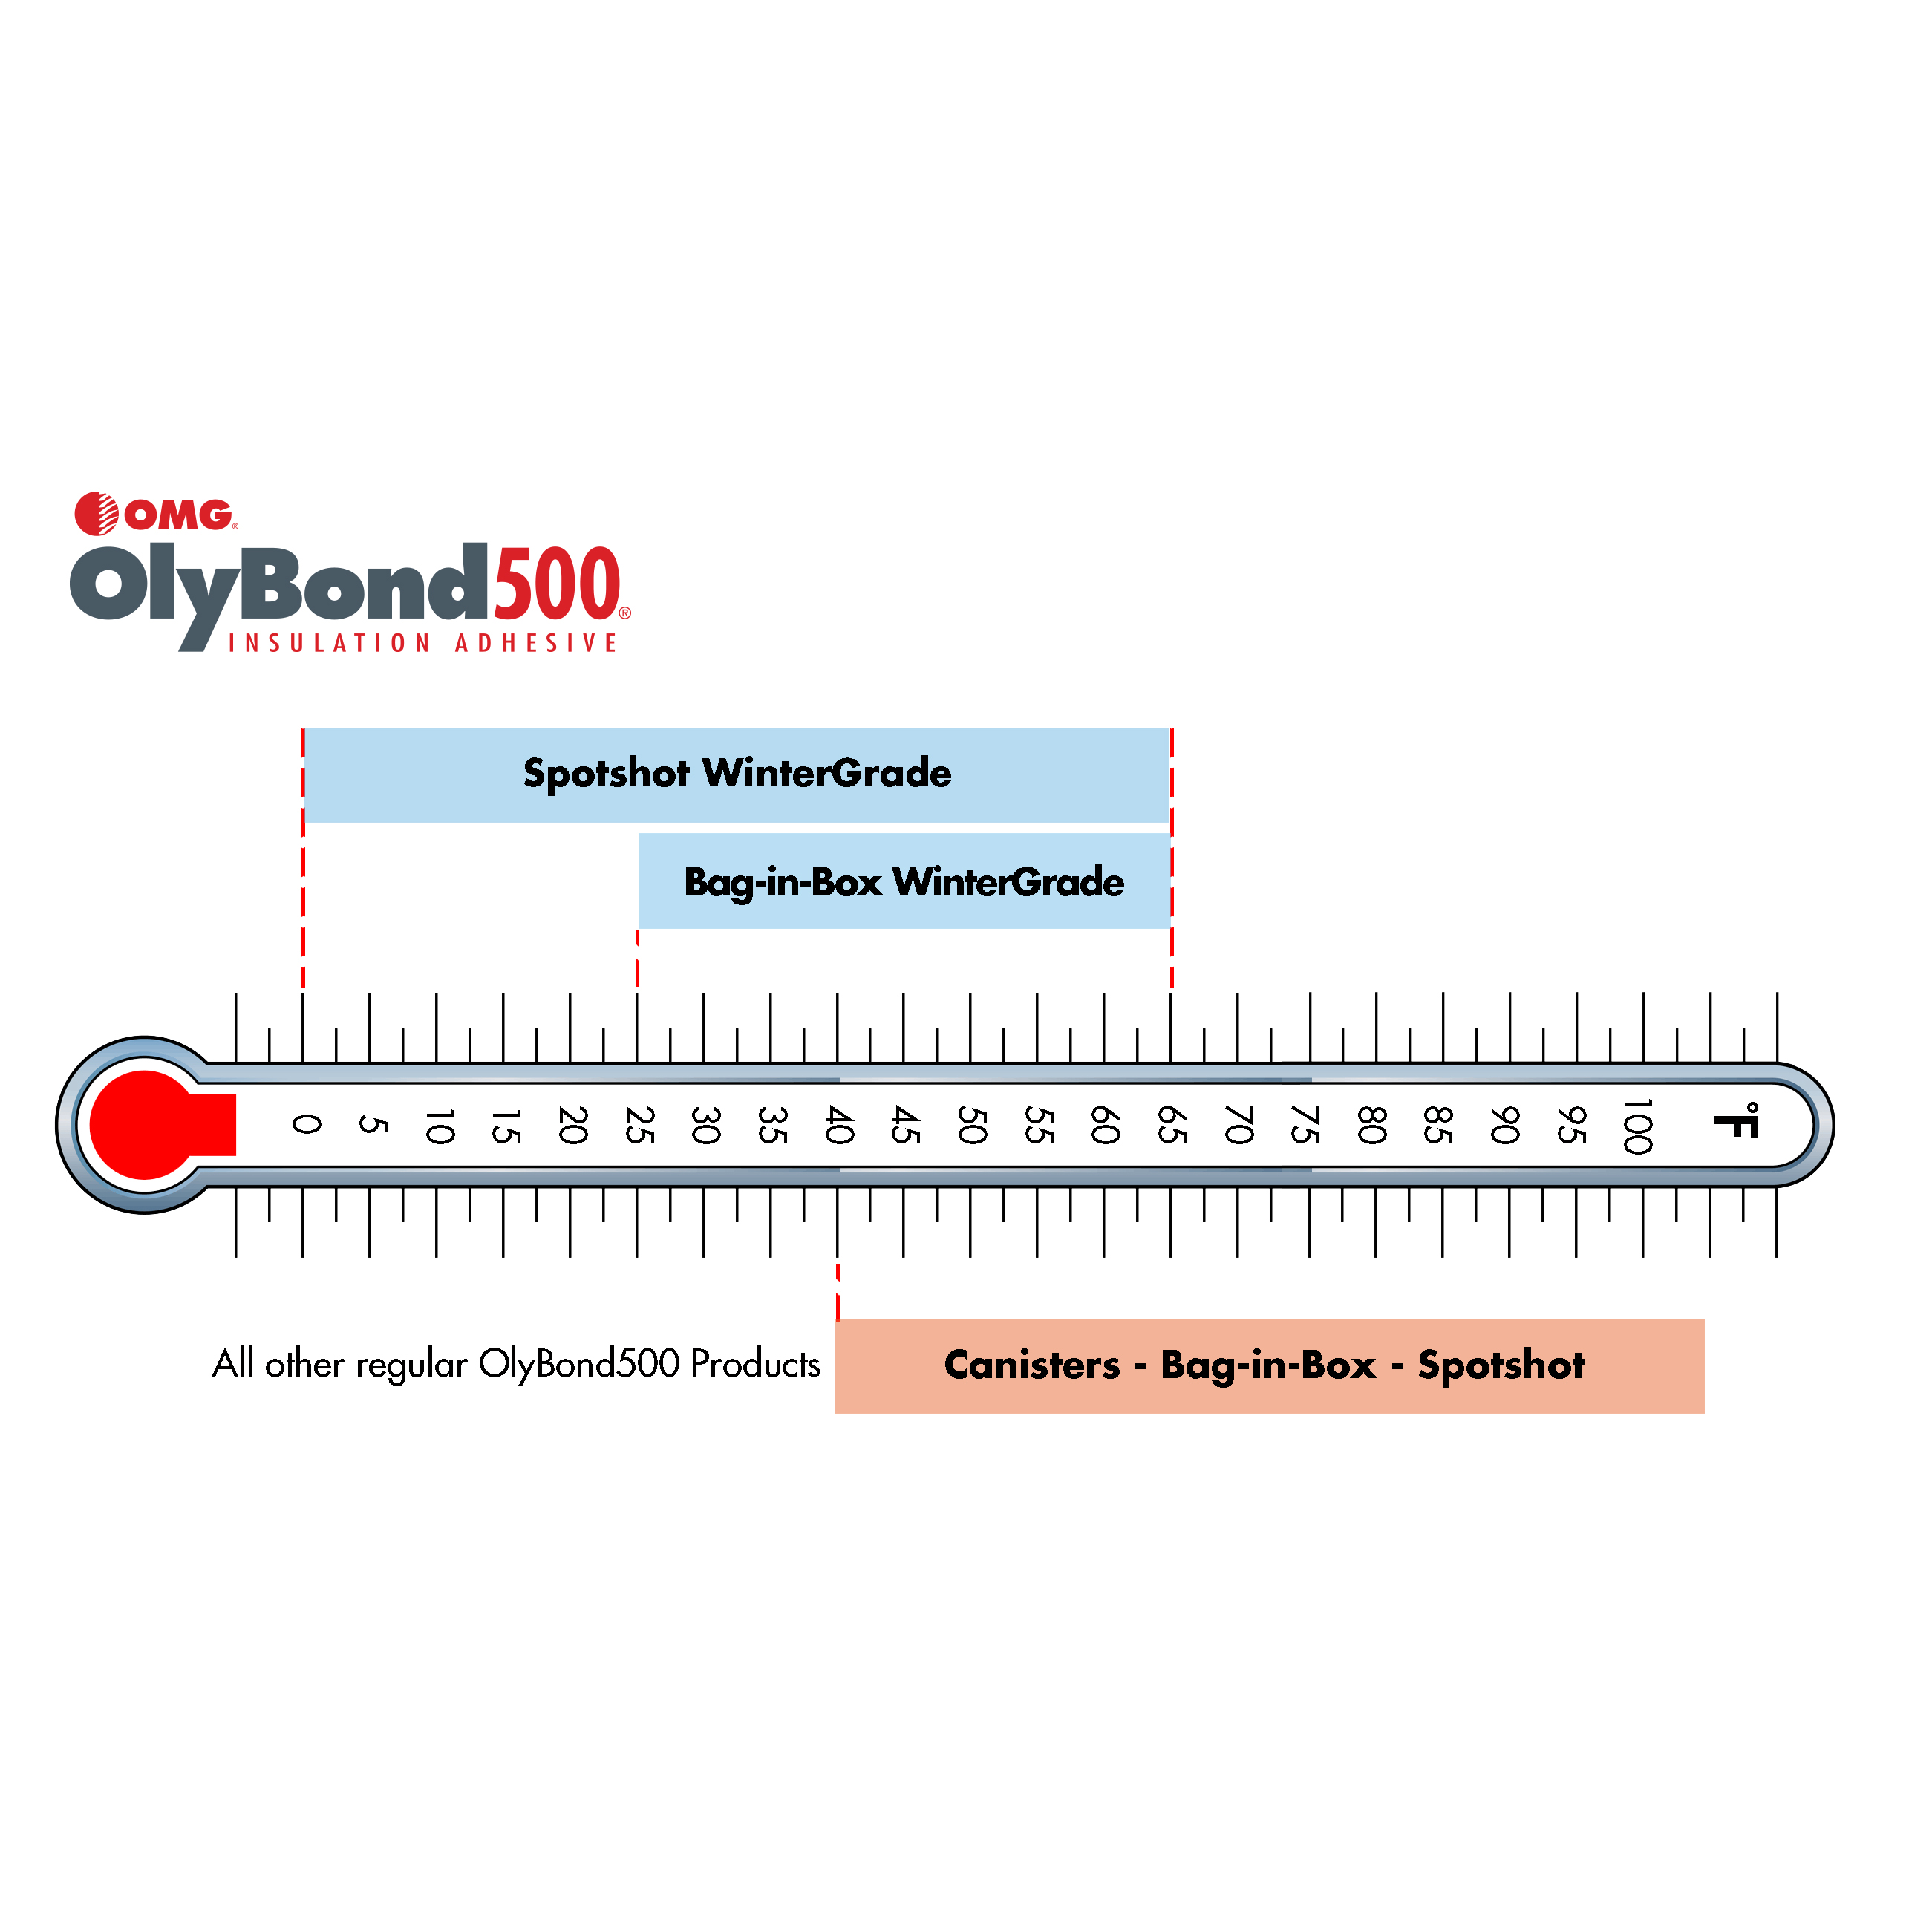 Image of OlyBond thermometer